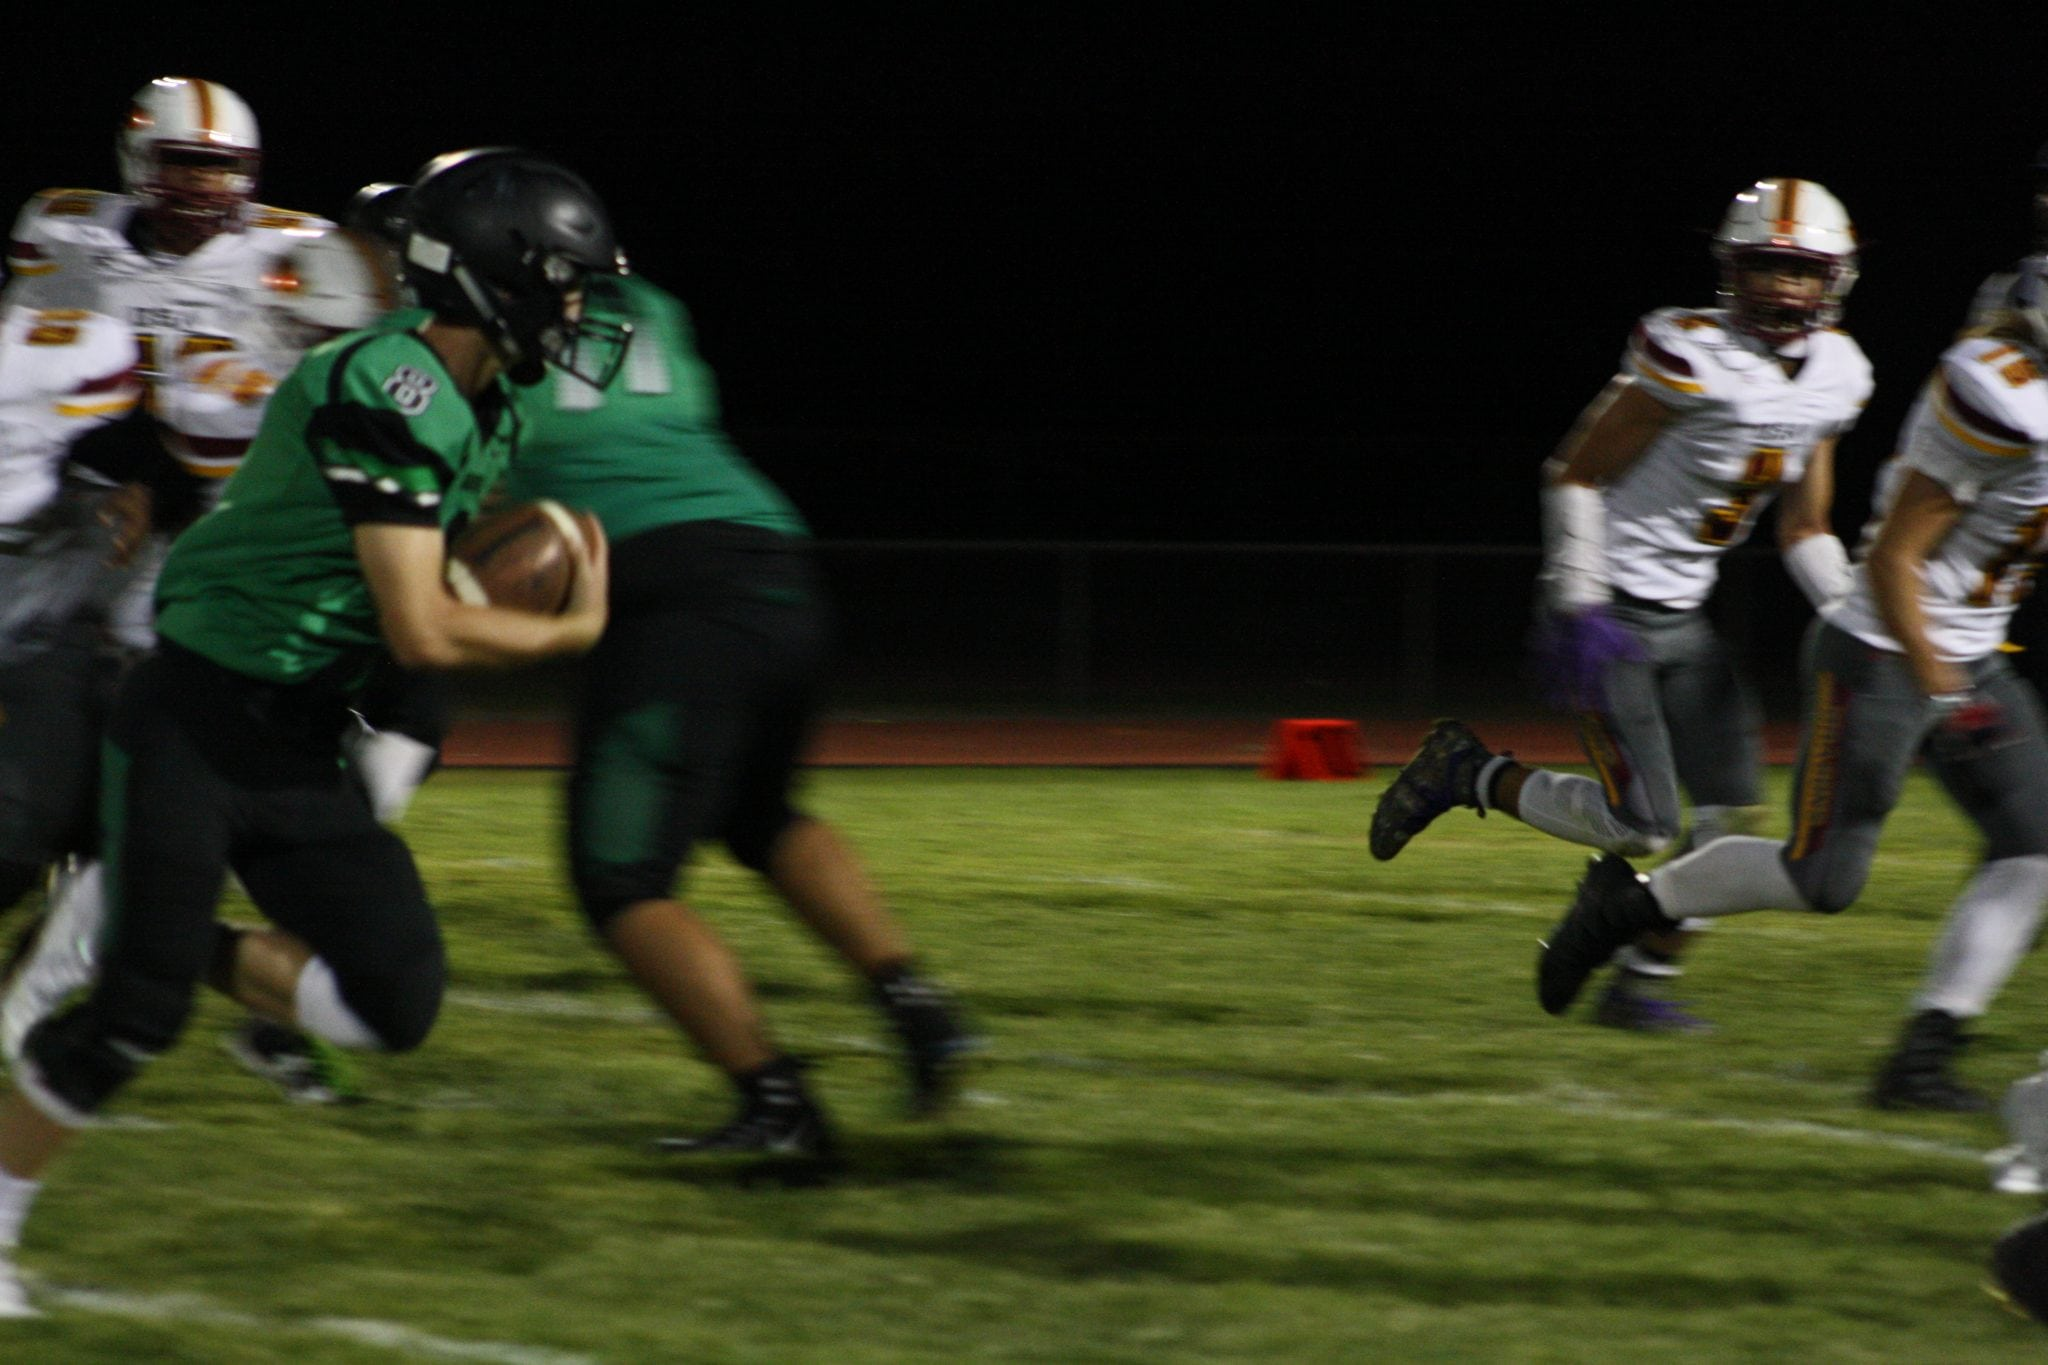 Hollingshead leads Bulldogs to 35-0 defeat of Rams